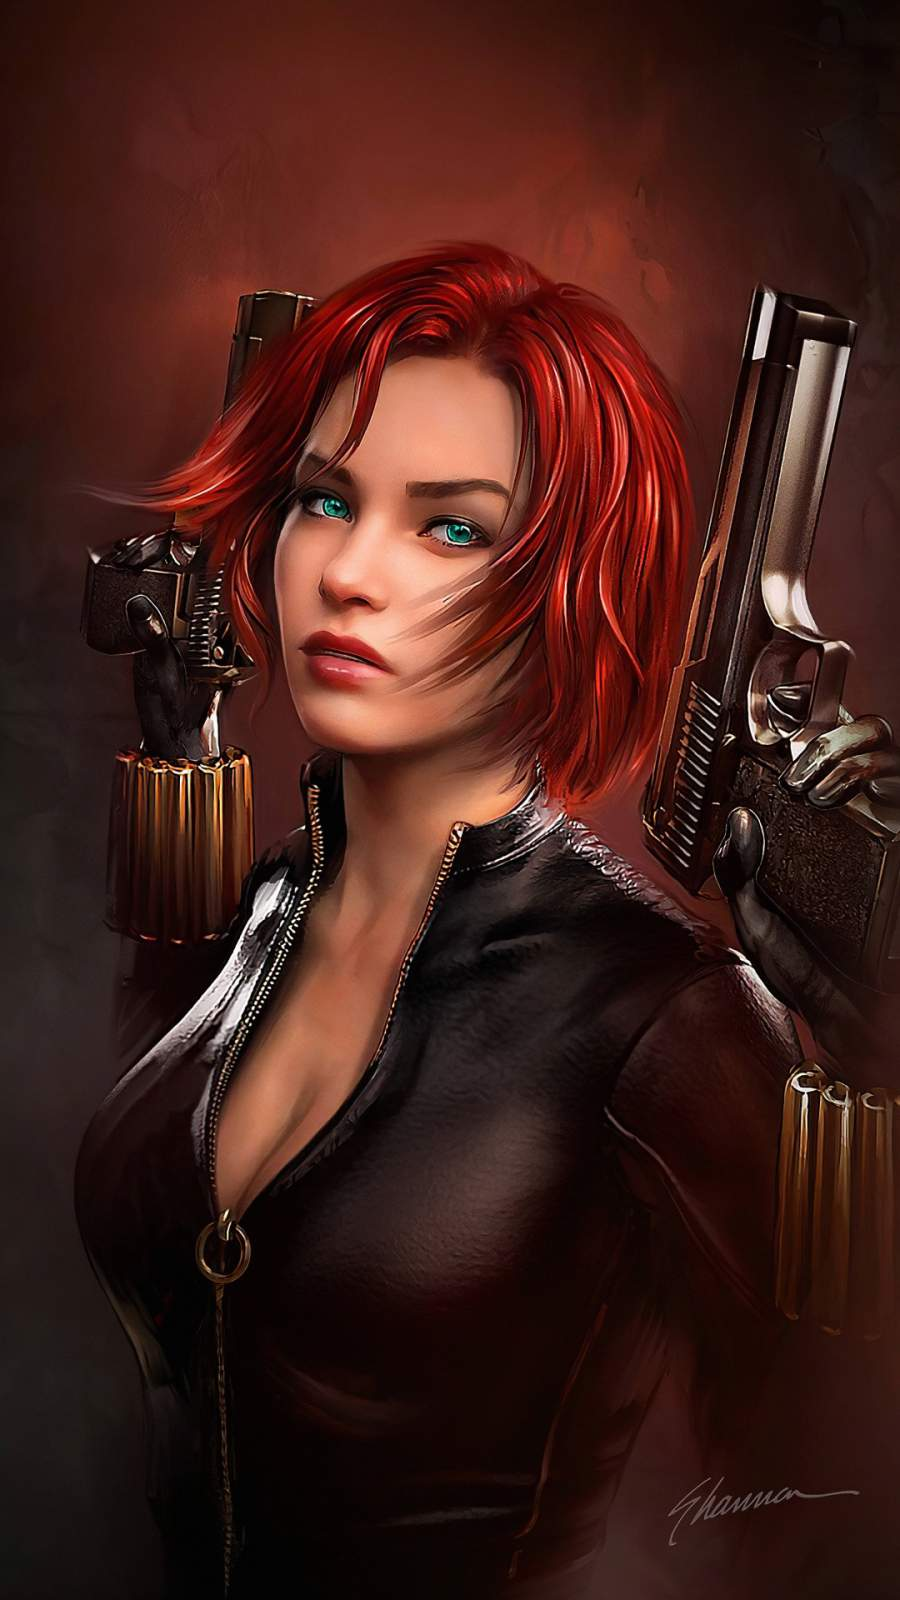 Black Widow Girl iPhone Wallpaper